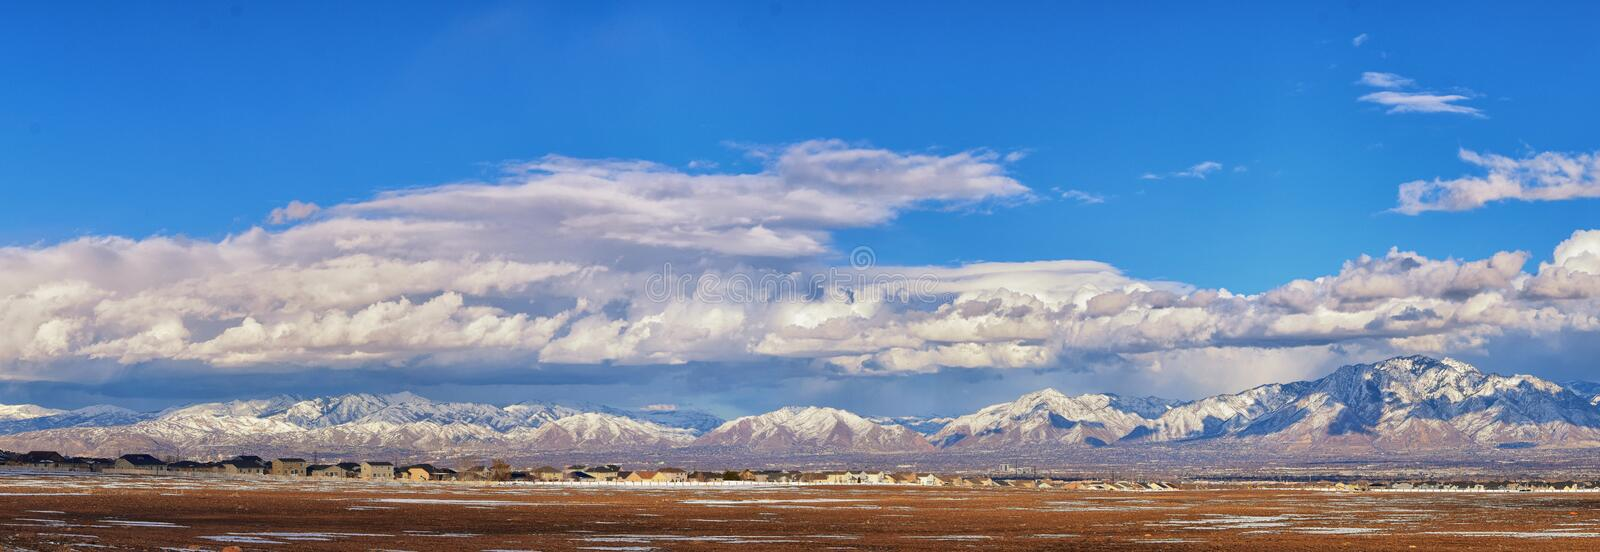 Winter-Panoramablick des Schnees bedeckte Wasatch Front Rocky Mountains, Great- Salt Laketal und Cloudscape von Bacchus Highway m lizenzfreie stockfotos